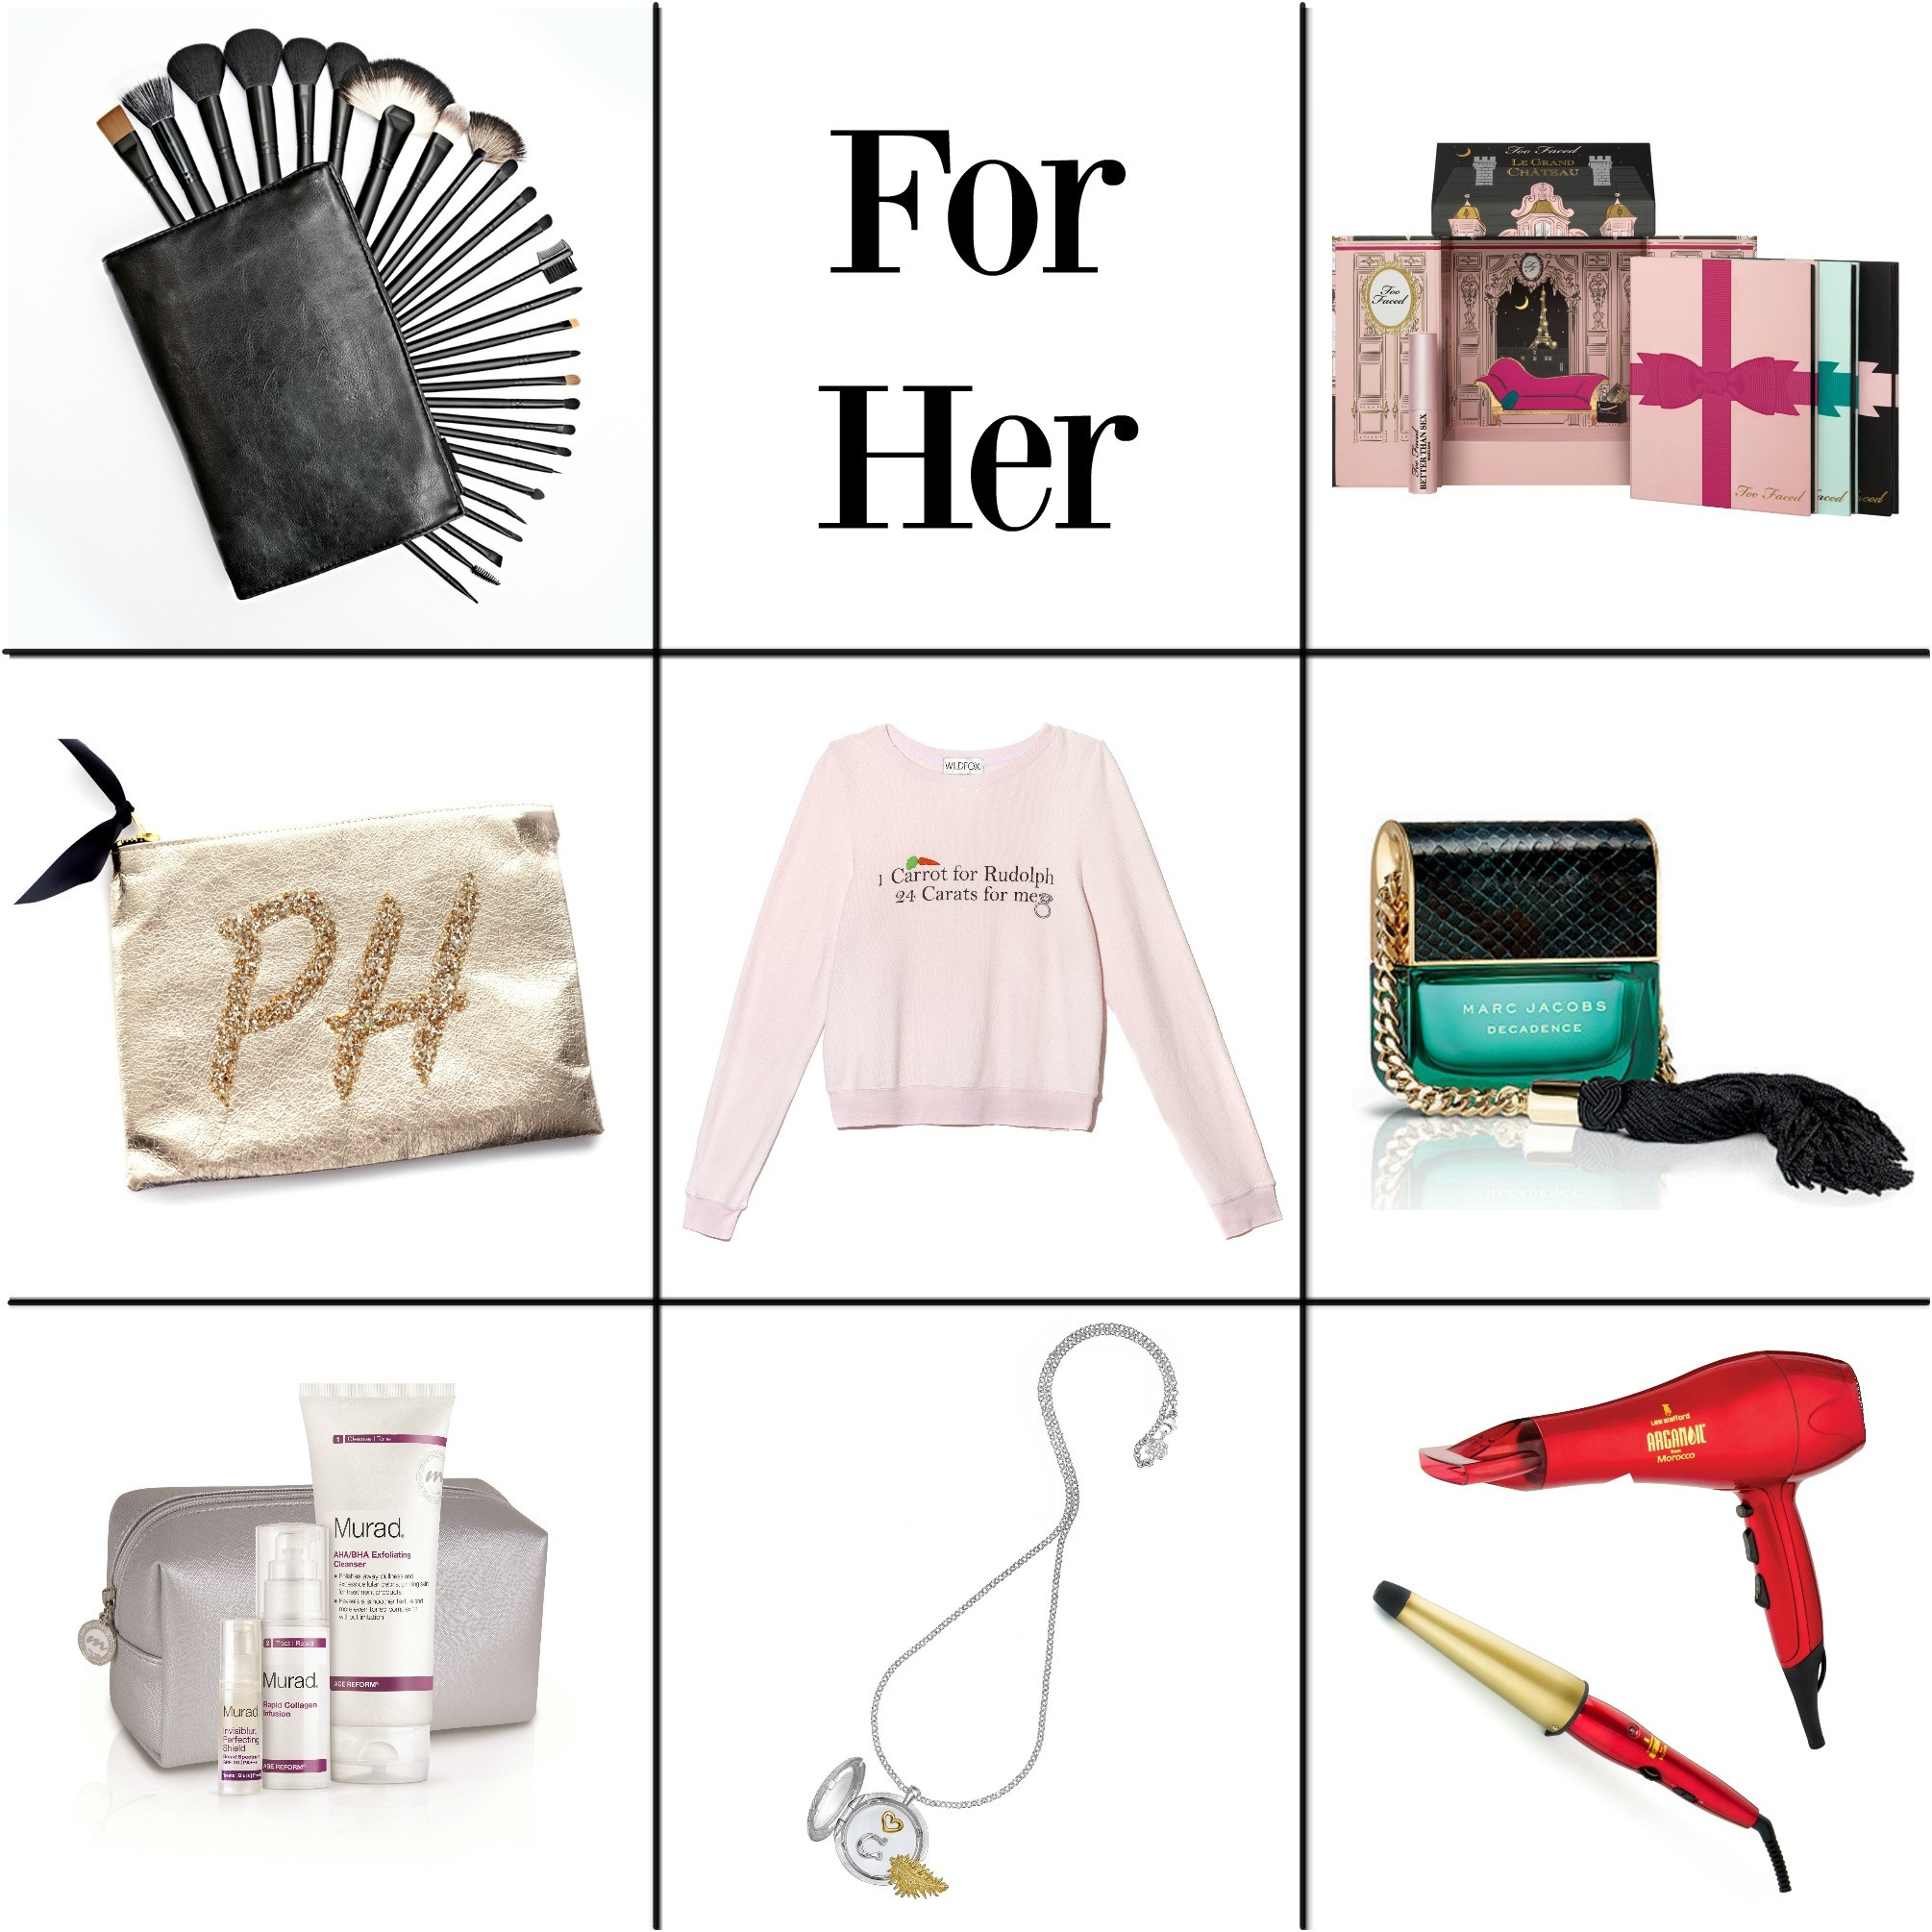 Best ideas about Holiday Gift Ideas For Her . Save or Pin Gift Ideas For Her Christmas 2015 Now.